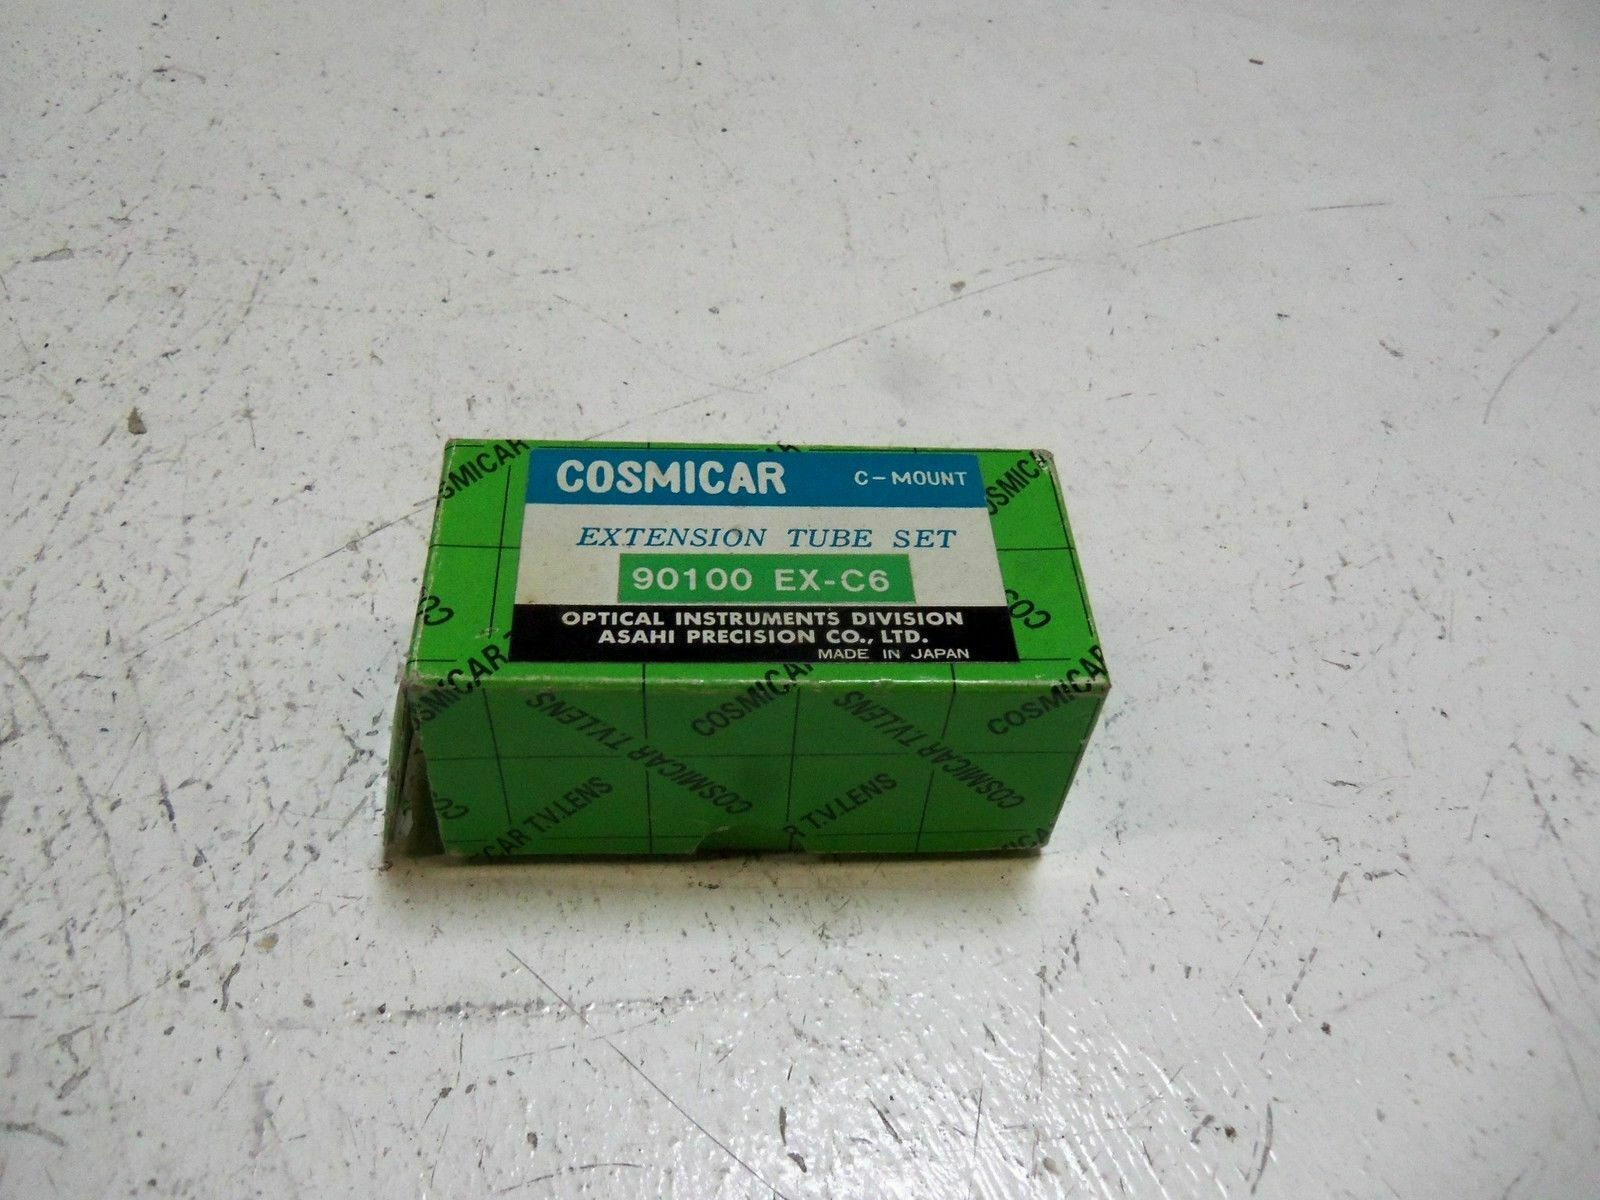 COMISCAR EX-C6 EXTENSION TUBE SET NEW IN BOX